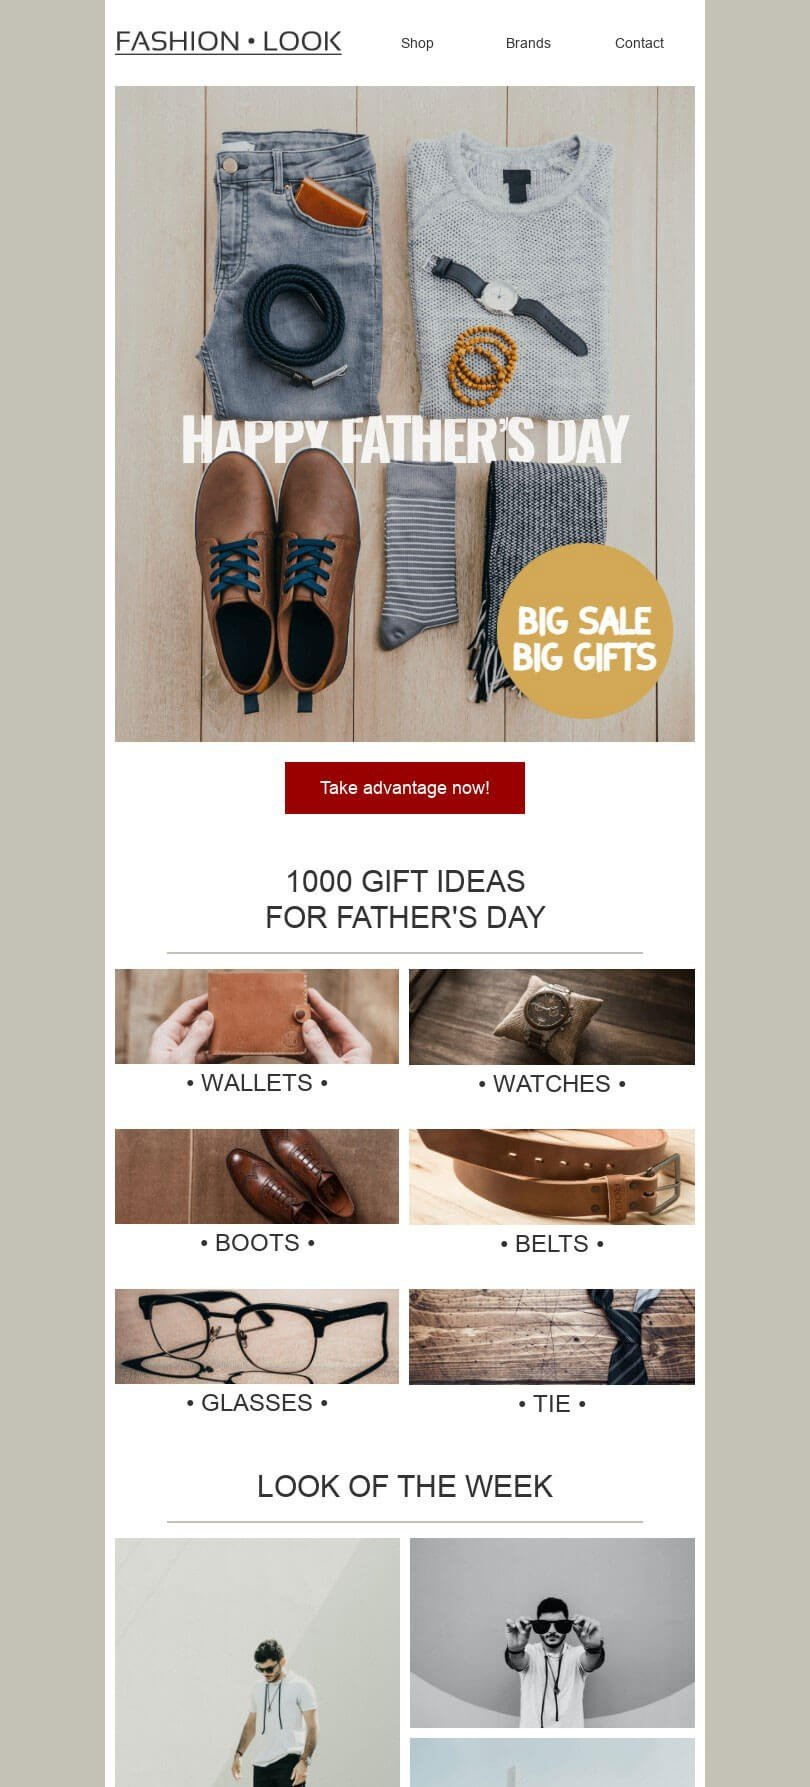 Father's Day Email Template «Accessories for men» for Fashion industry desktop view